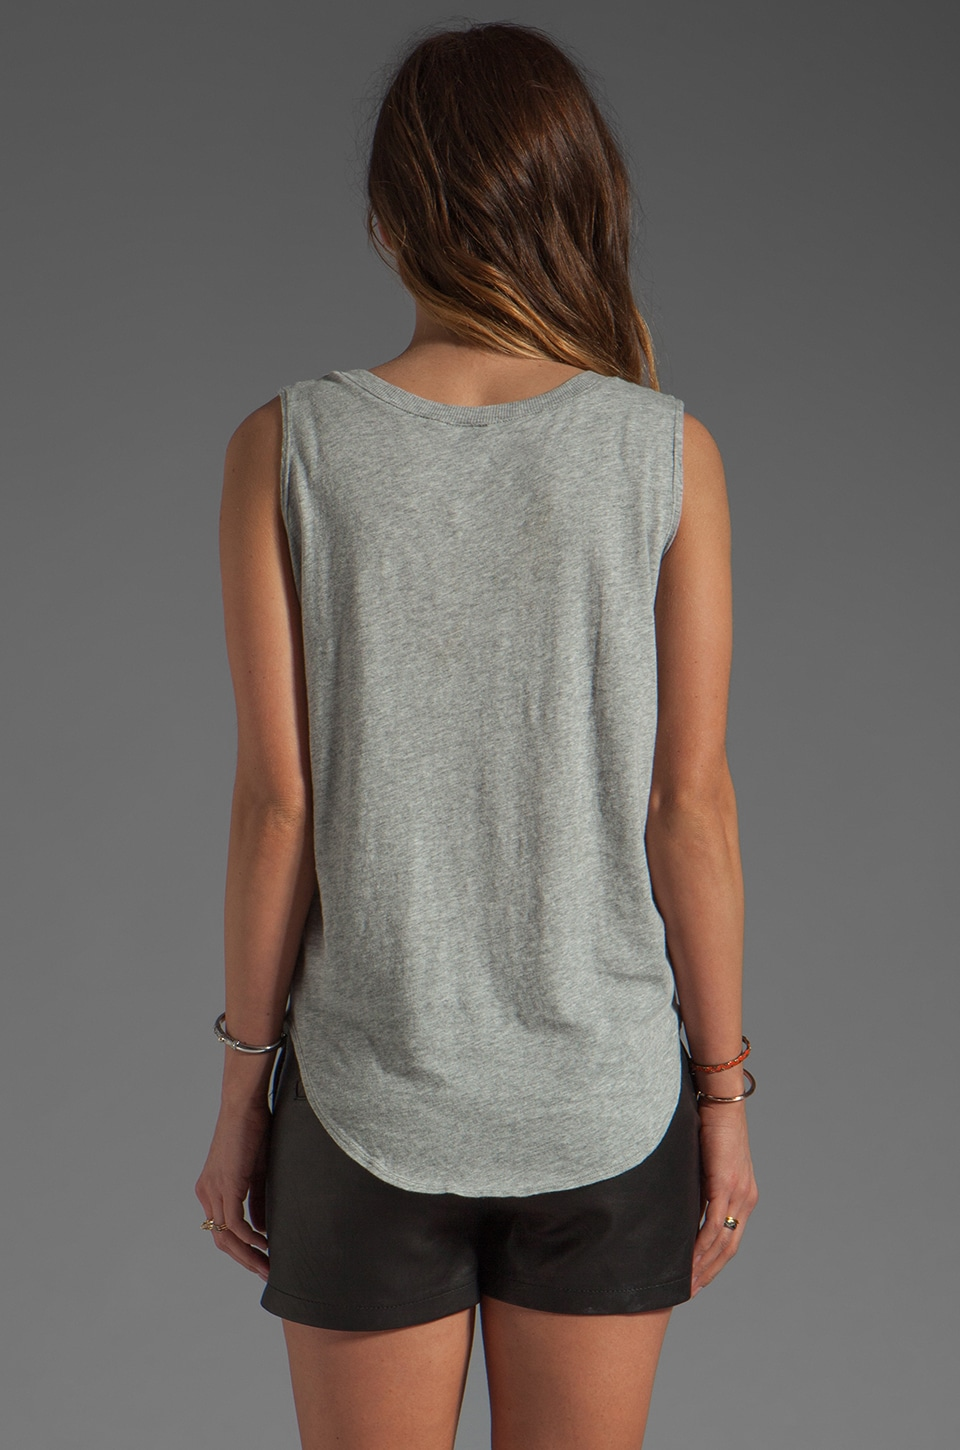 Bobi Lightweight Jersey Rib Trim Tank in Heather Grey